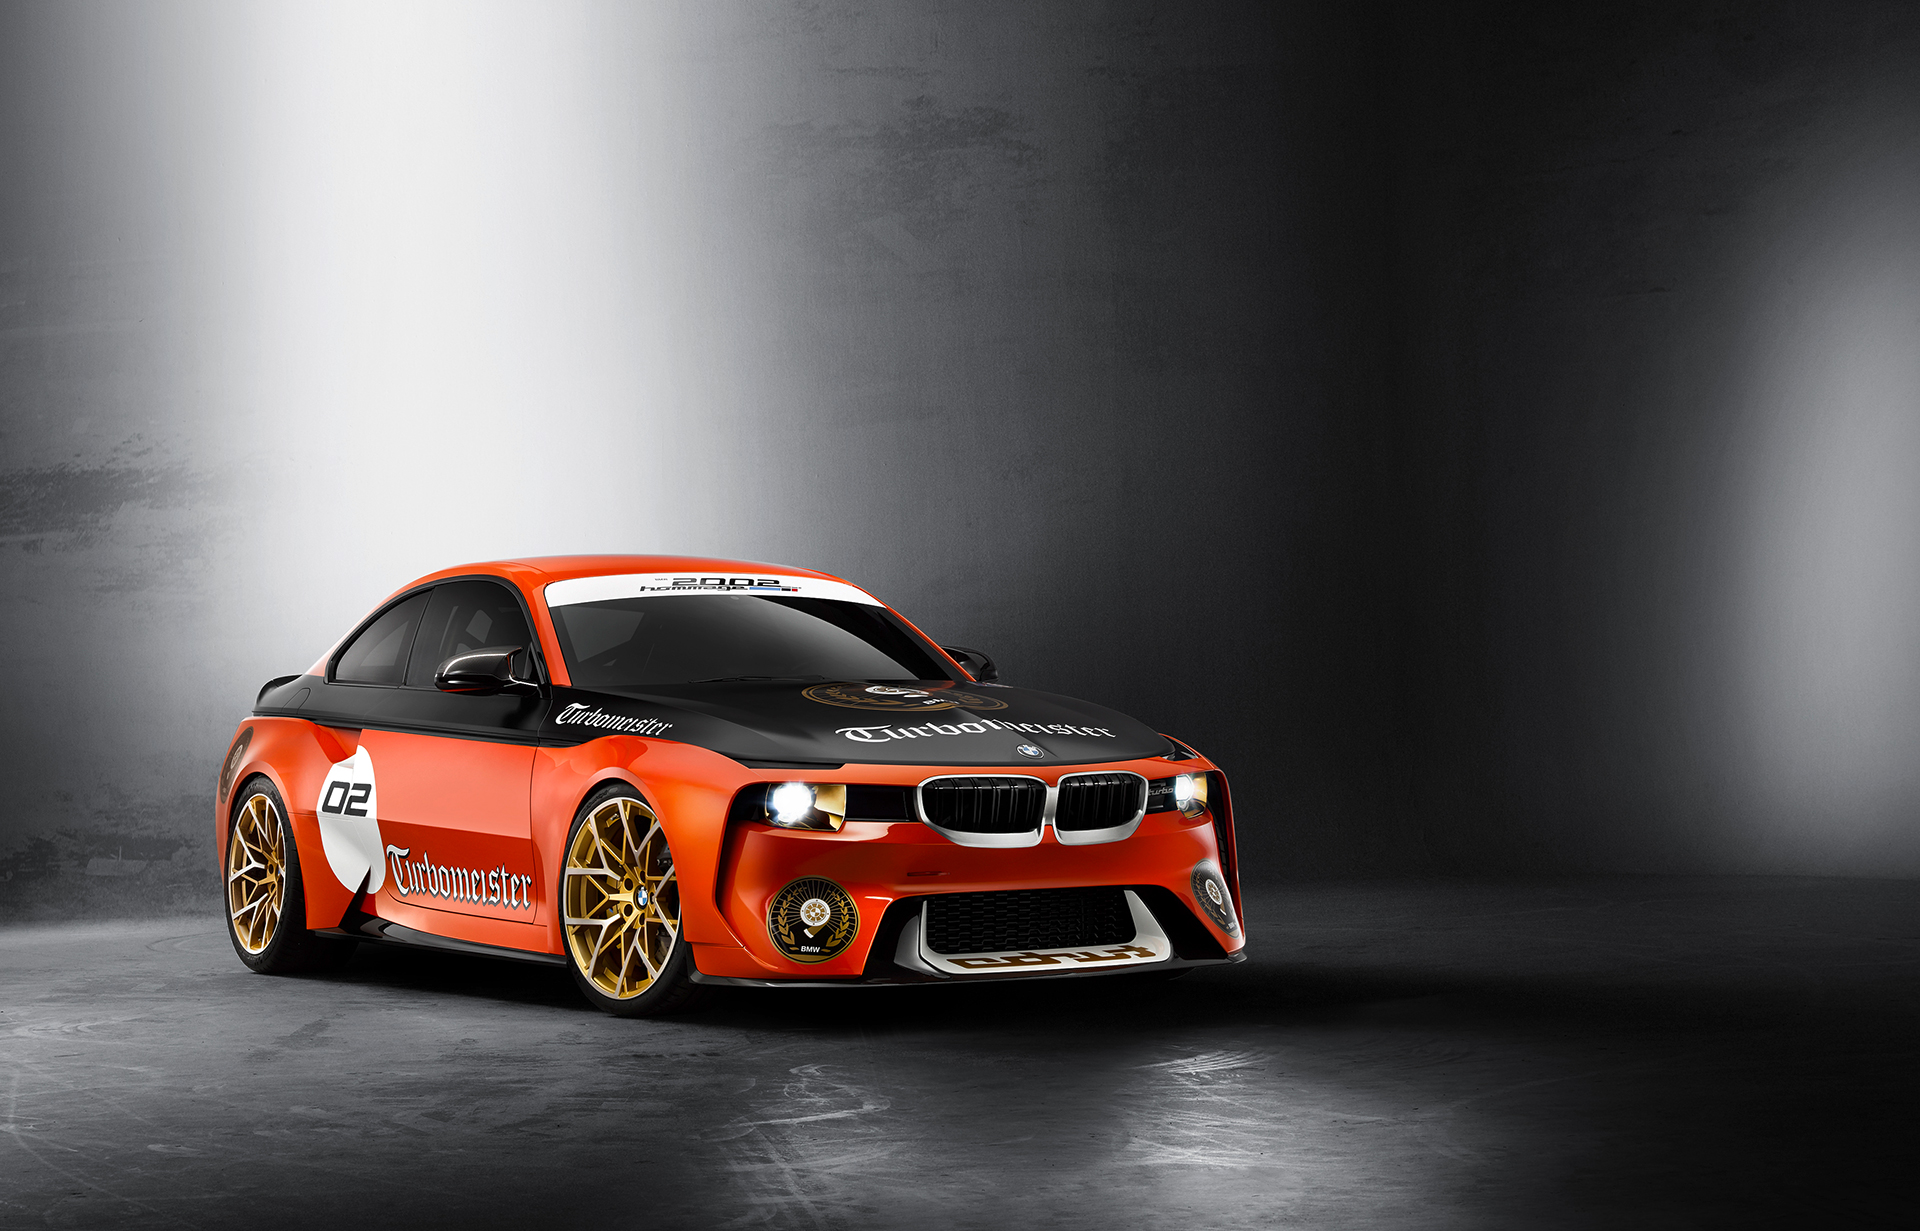 BMW 2002 Hommage Turbomeister Concept - 2016 - front side-face / profil avant